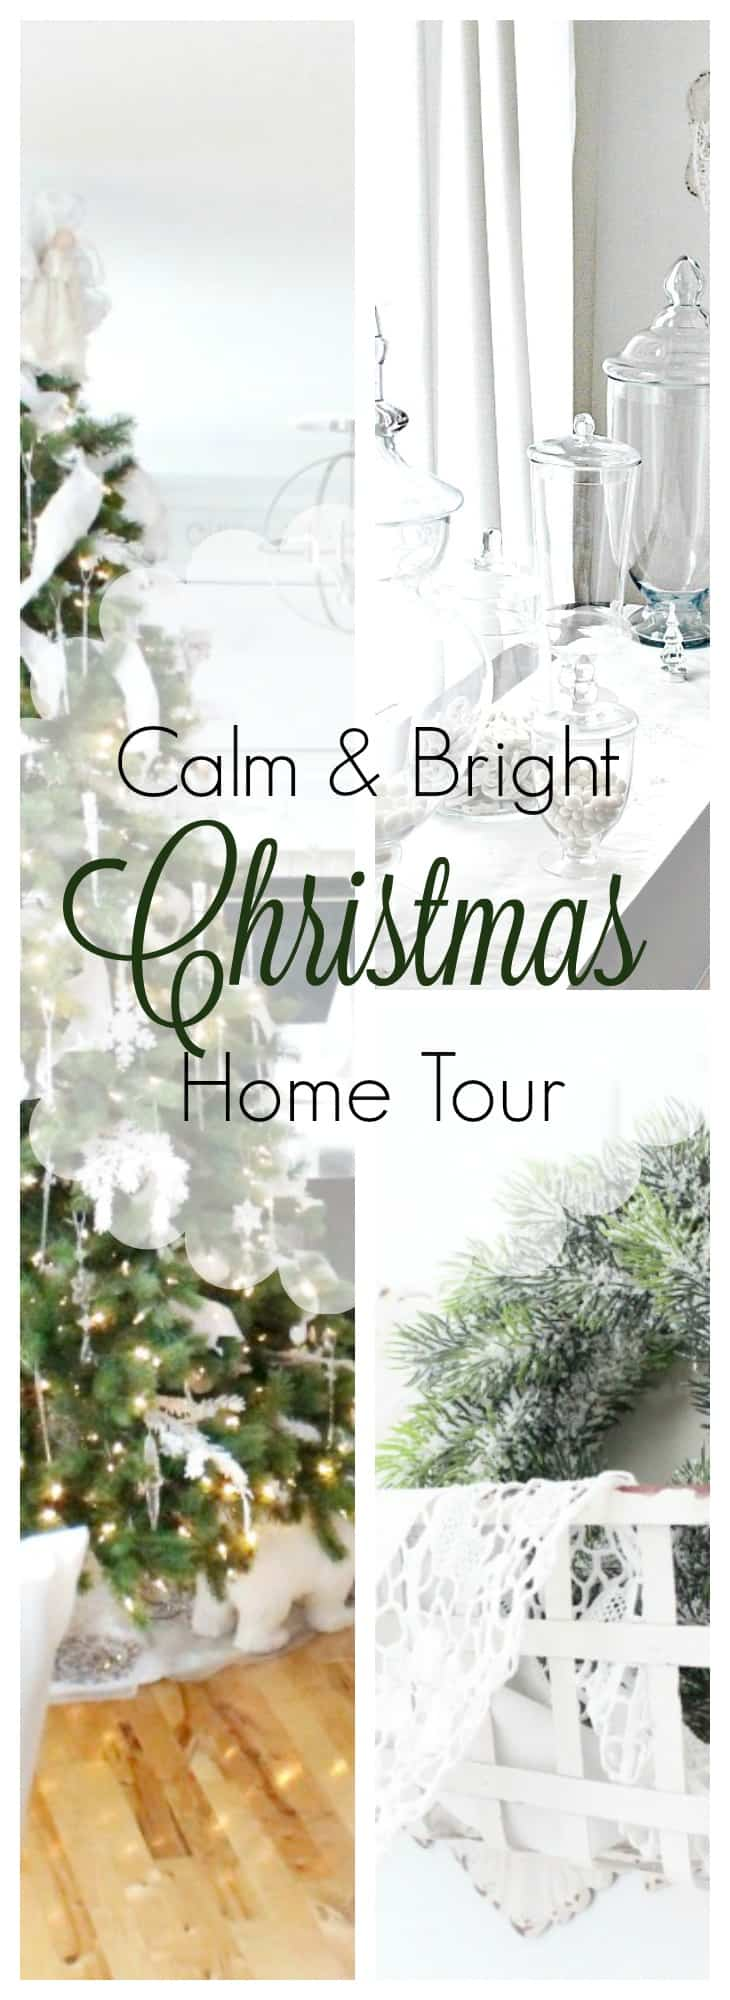 Christmas home tour, Christmas House, Christmas Home, Christmas house tour,  Christmas home tour 2017